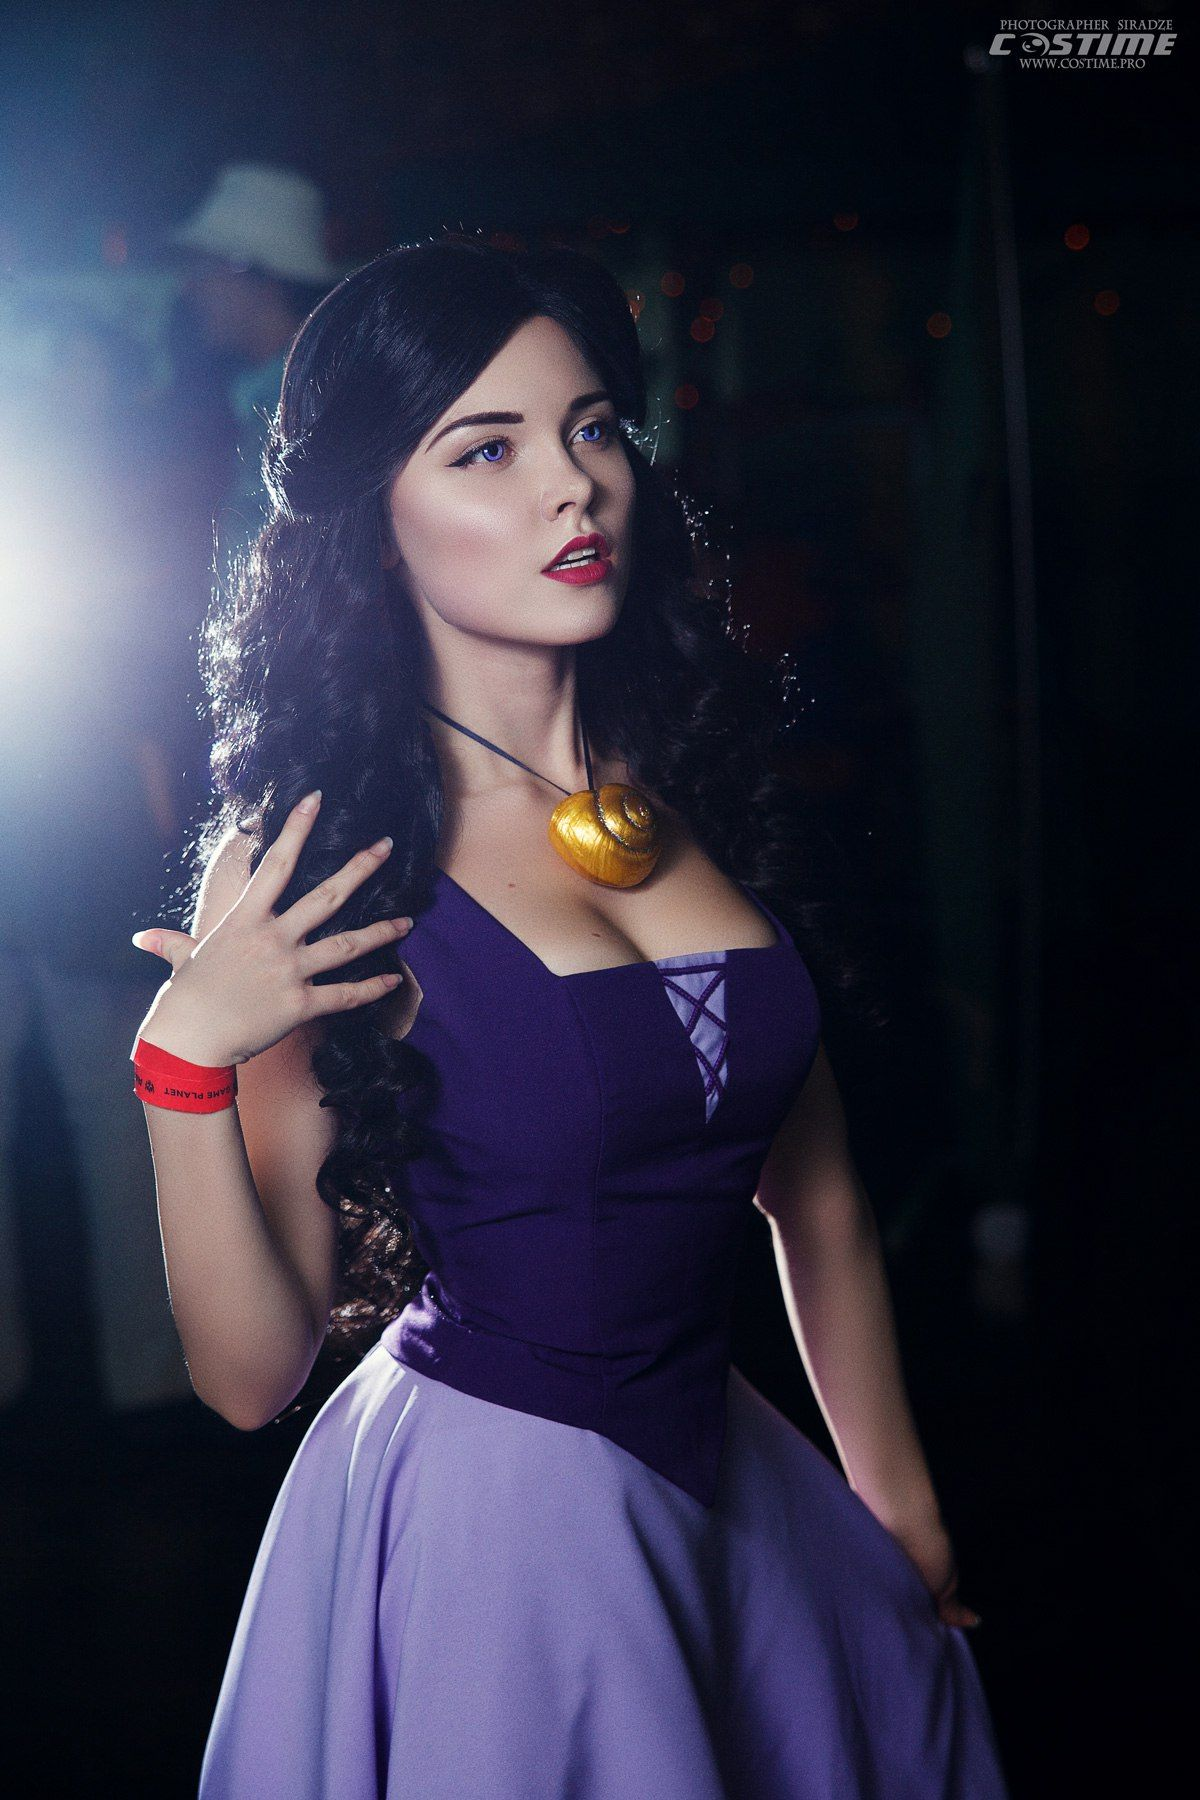 vk.com Vanessa- The Little Mermaid, Ilona Bugaeva Cosplay pinned from https://vk